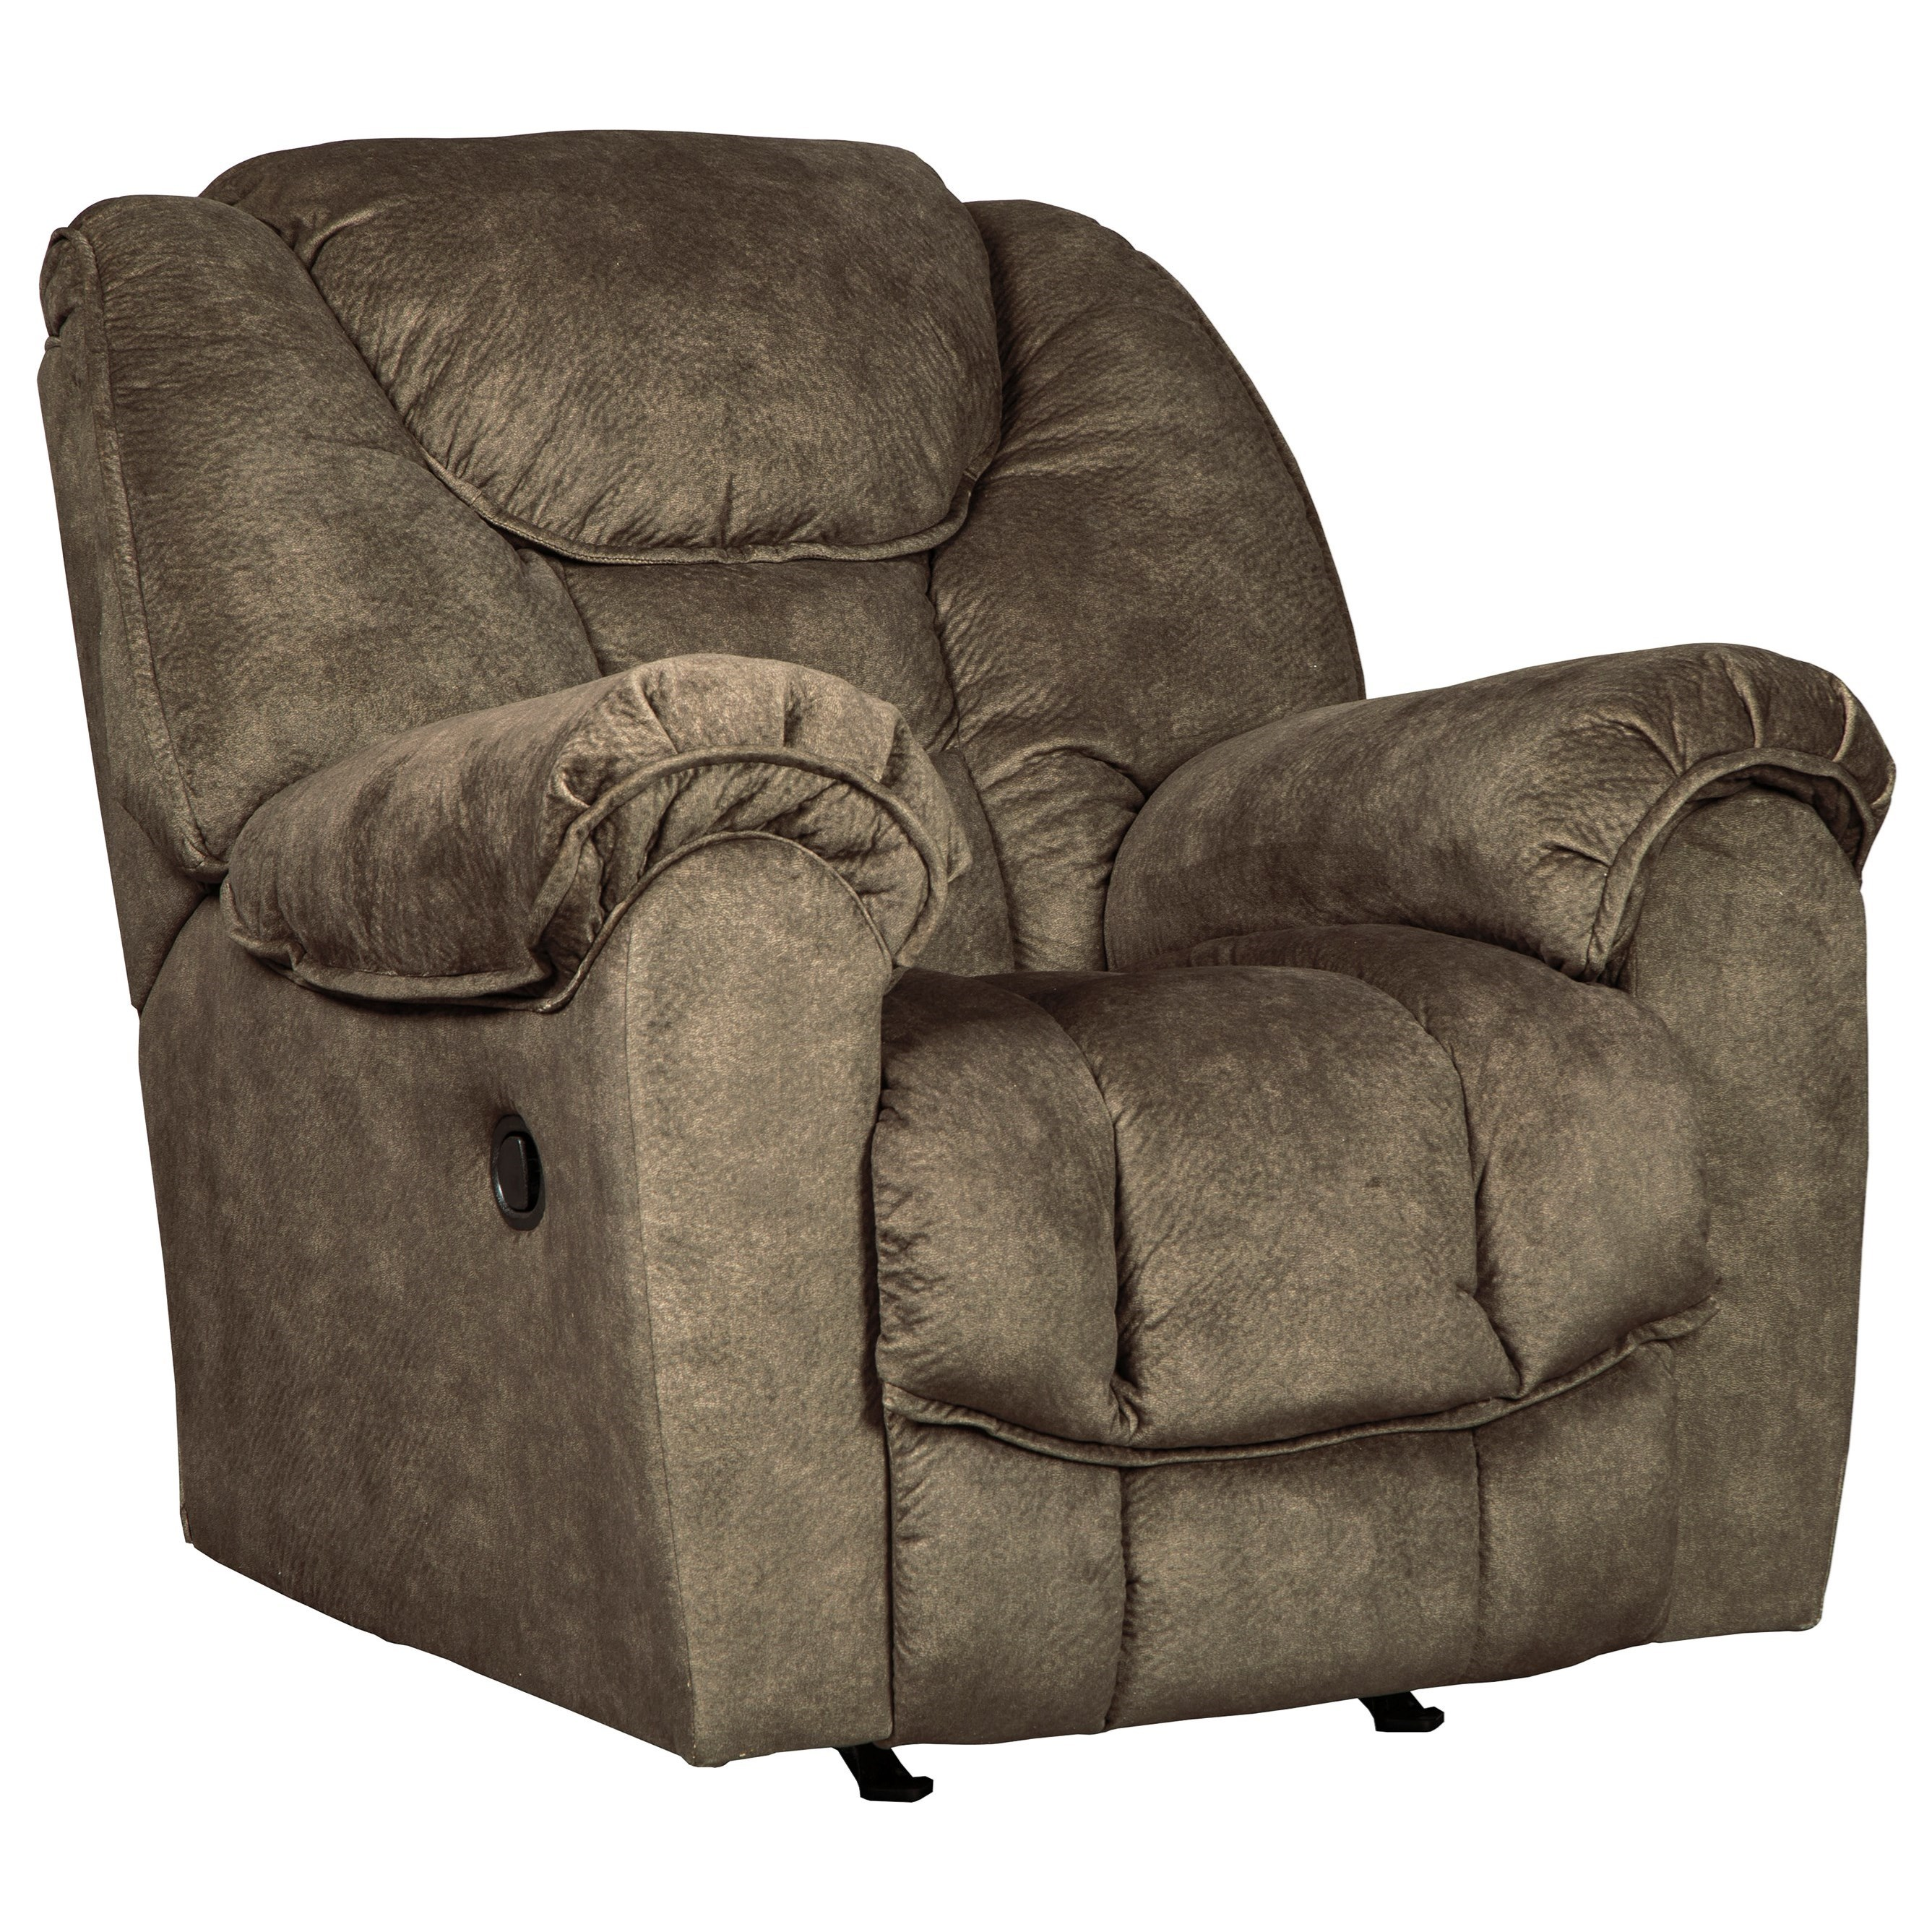 mocha home product to comforter reclining enlarge seat open design the furniture sd classy two click sofa ashley hogan recliner comfort